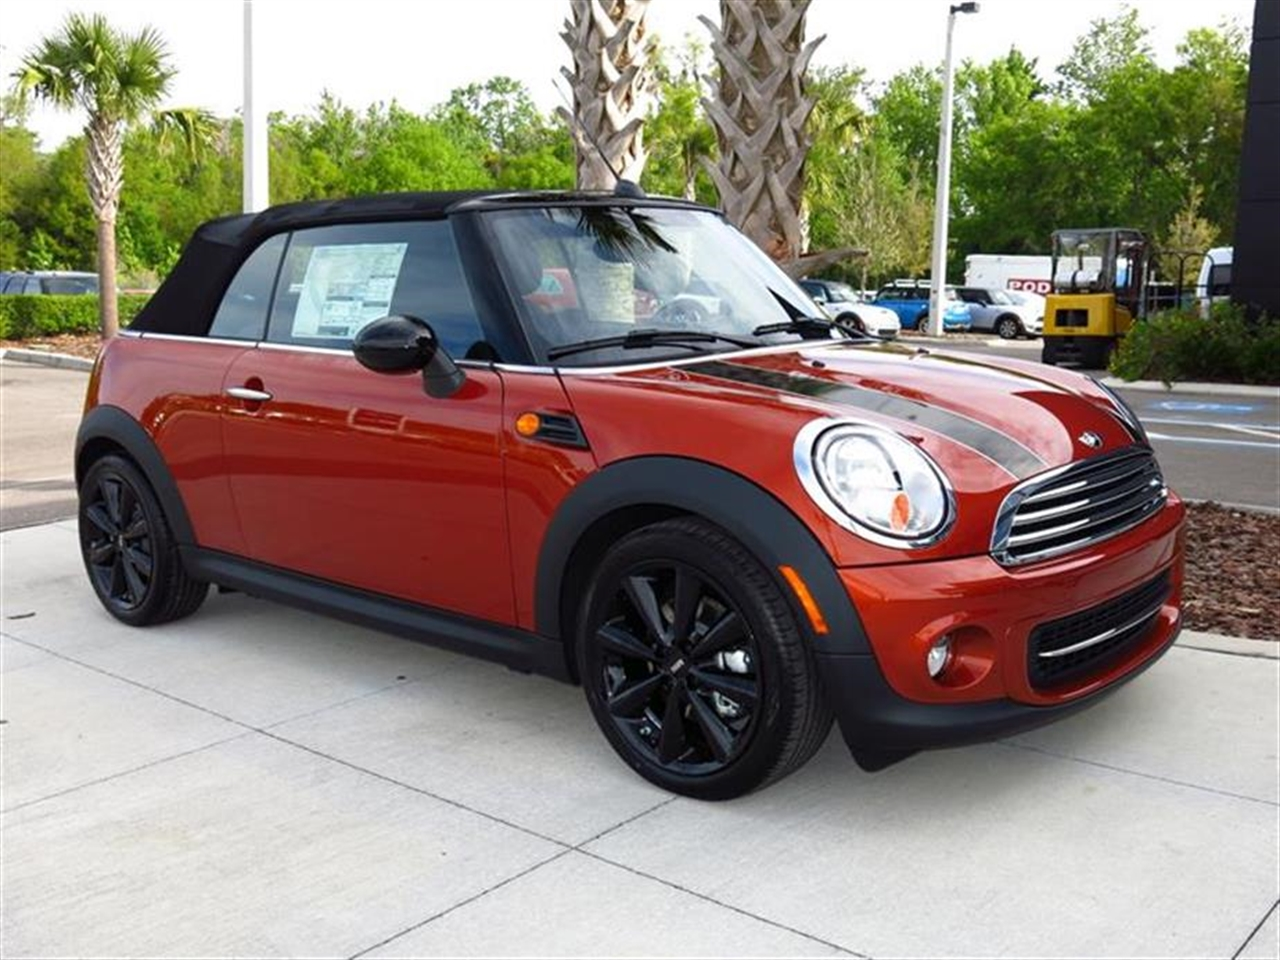 2014 MINI COOPER CONVERTIBLE 2dr 10 miles 2 12V DC Power Outlets 2 Seatback Storage Pockets LEAT